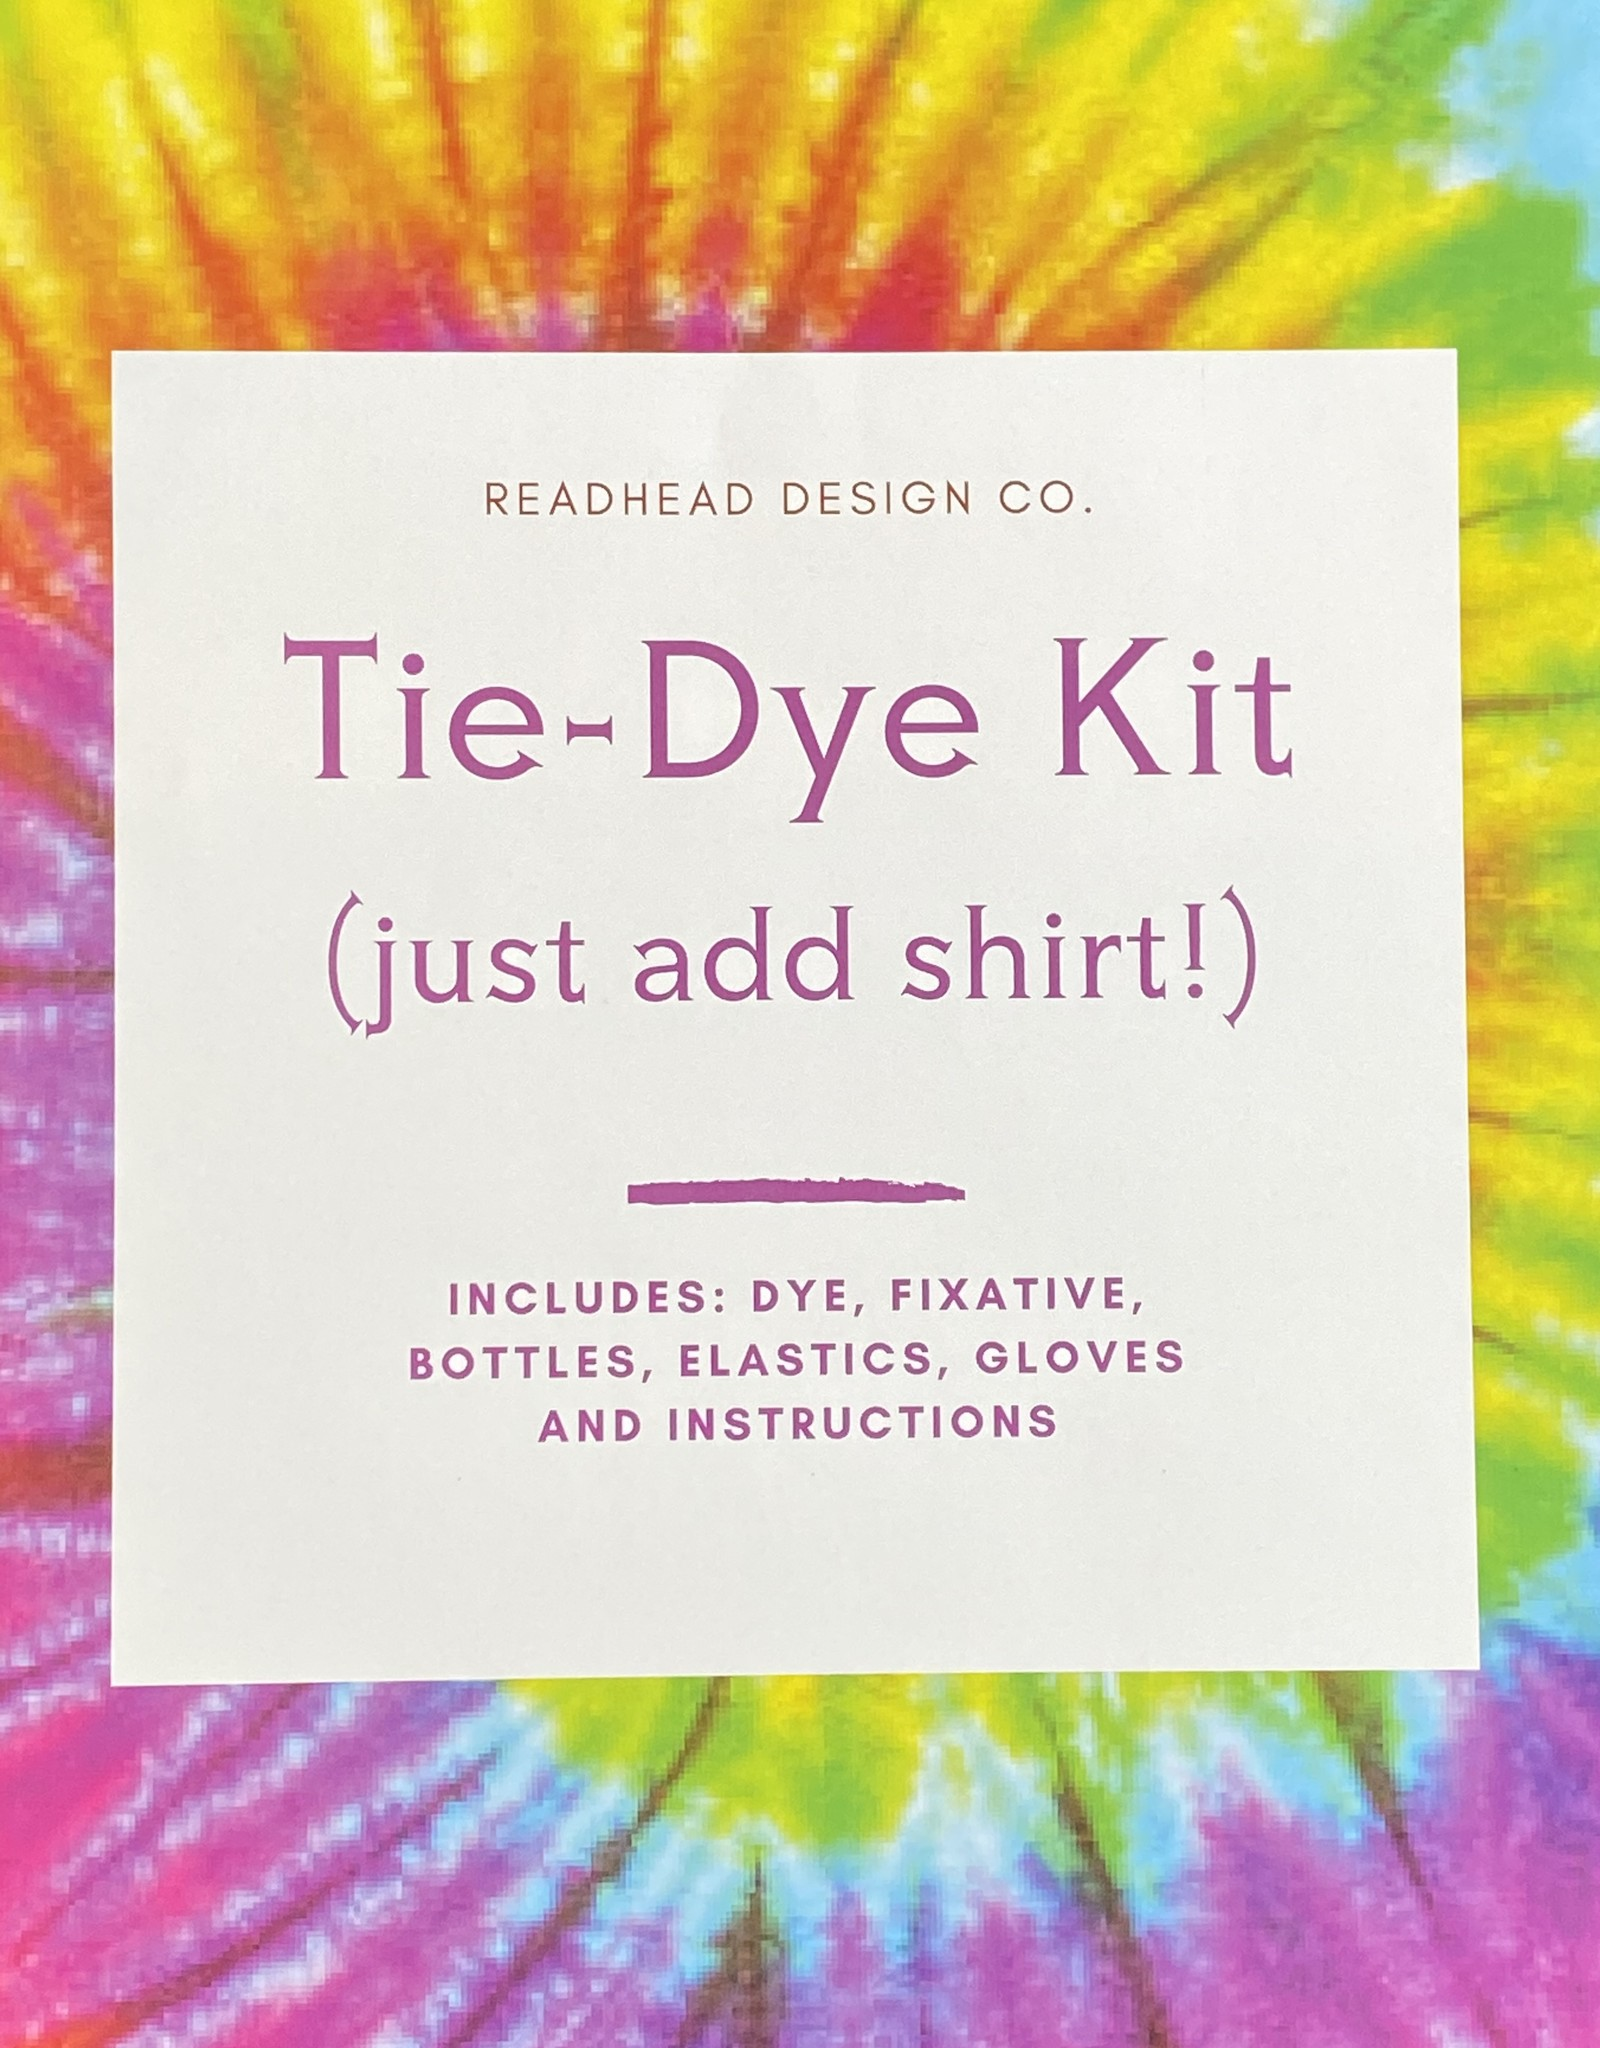 Readhead Design Co. Tie-Dye Kit